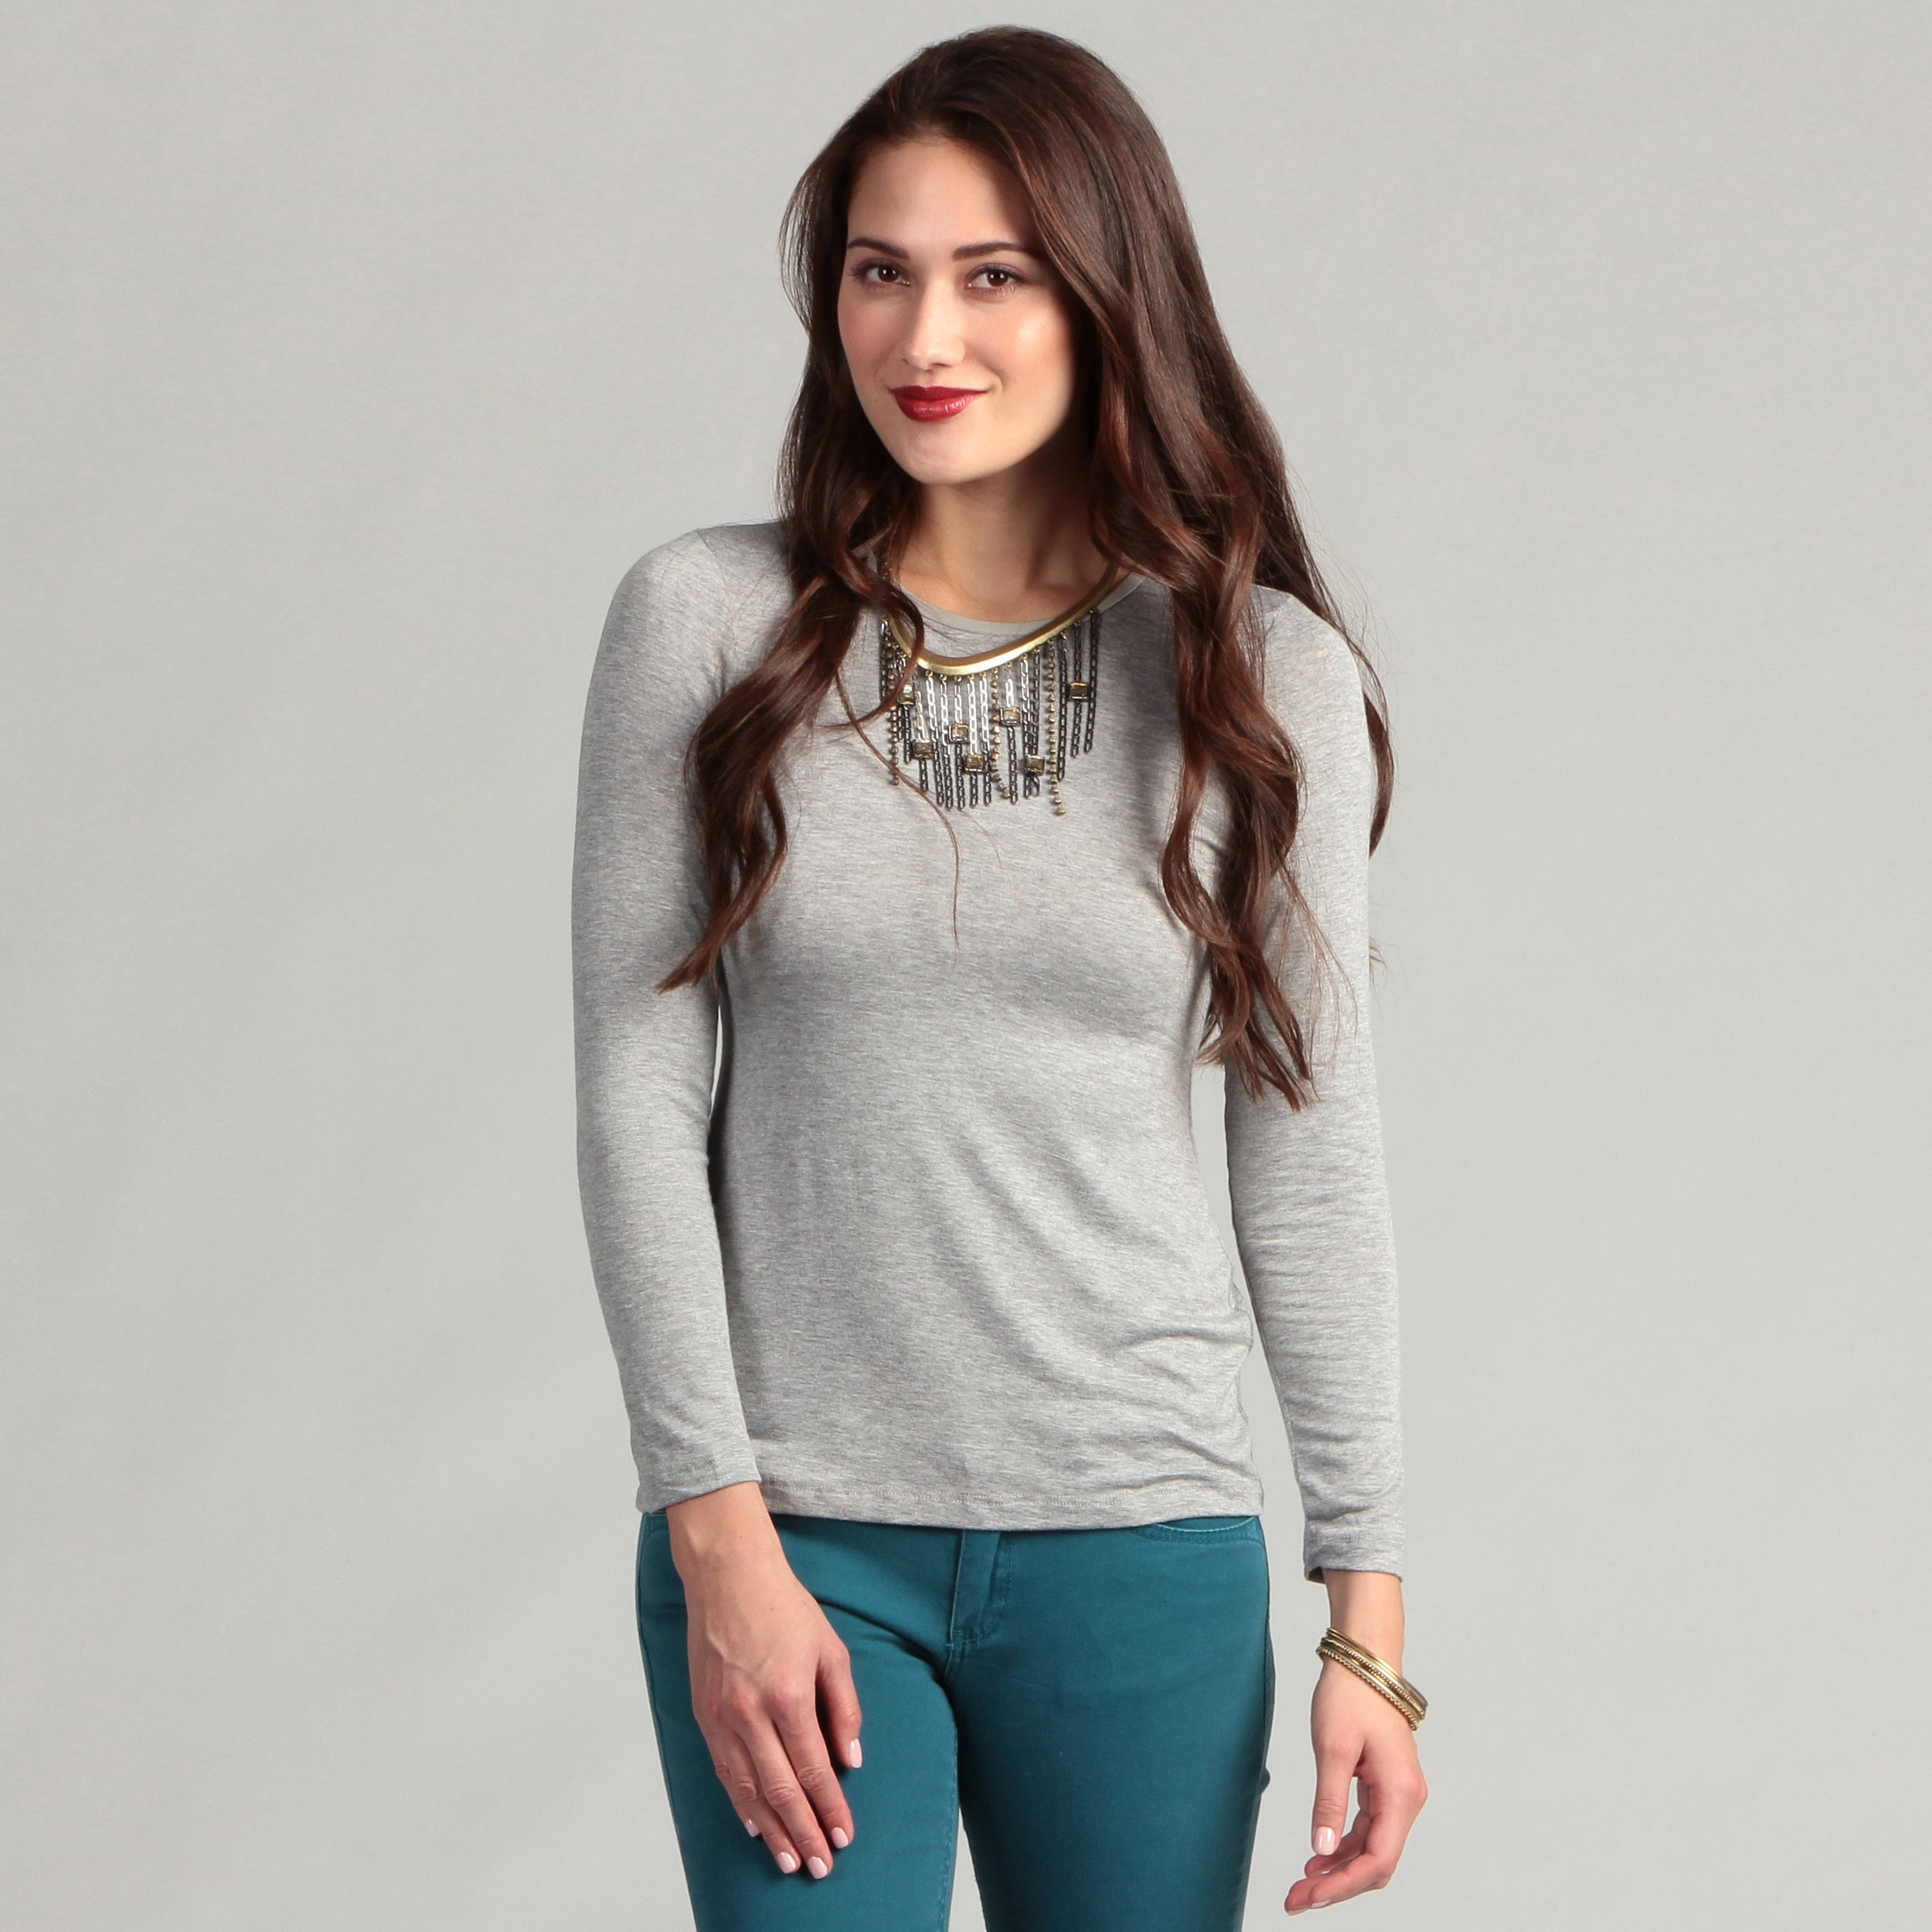 Shop 247 Comfort Womens Long Sleeve Knit Top On Sale Free